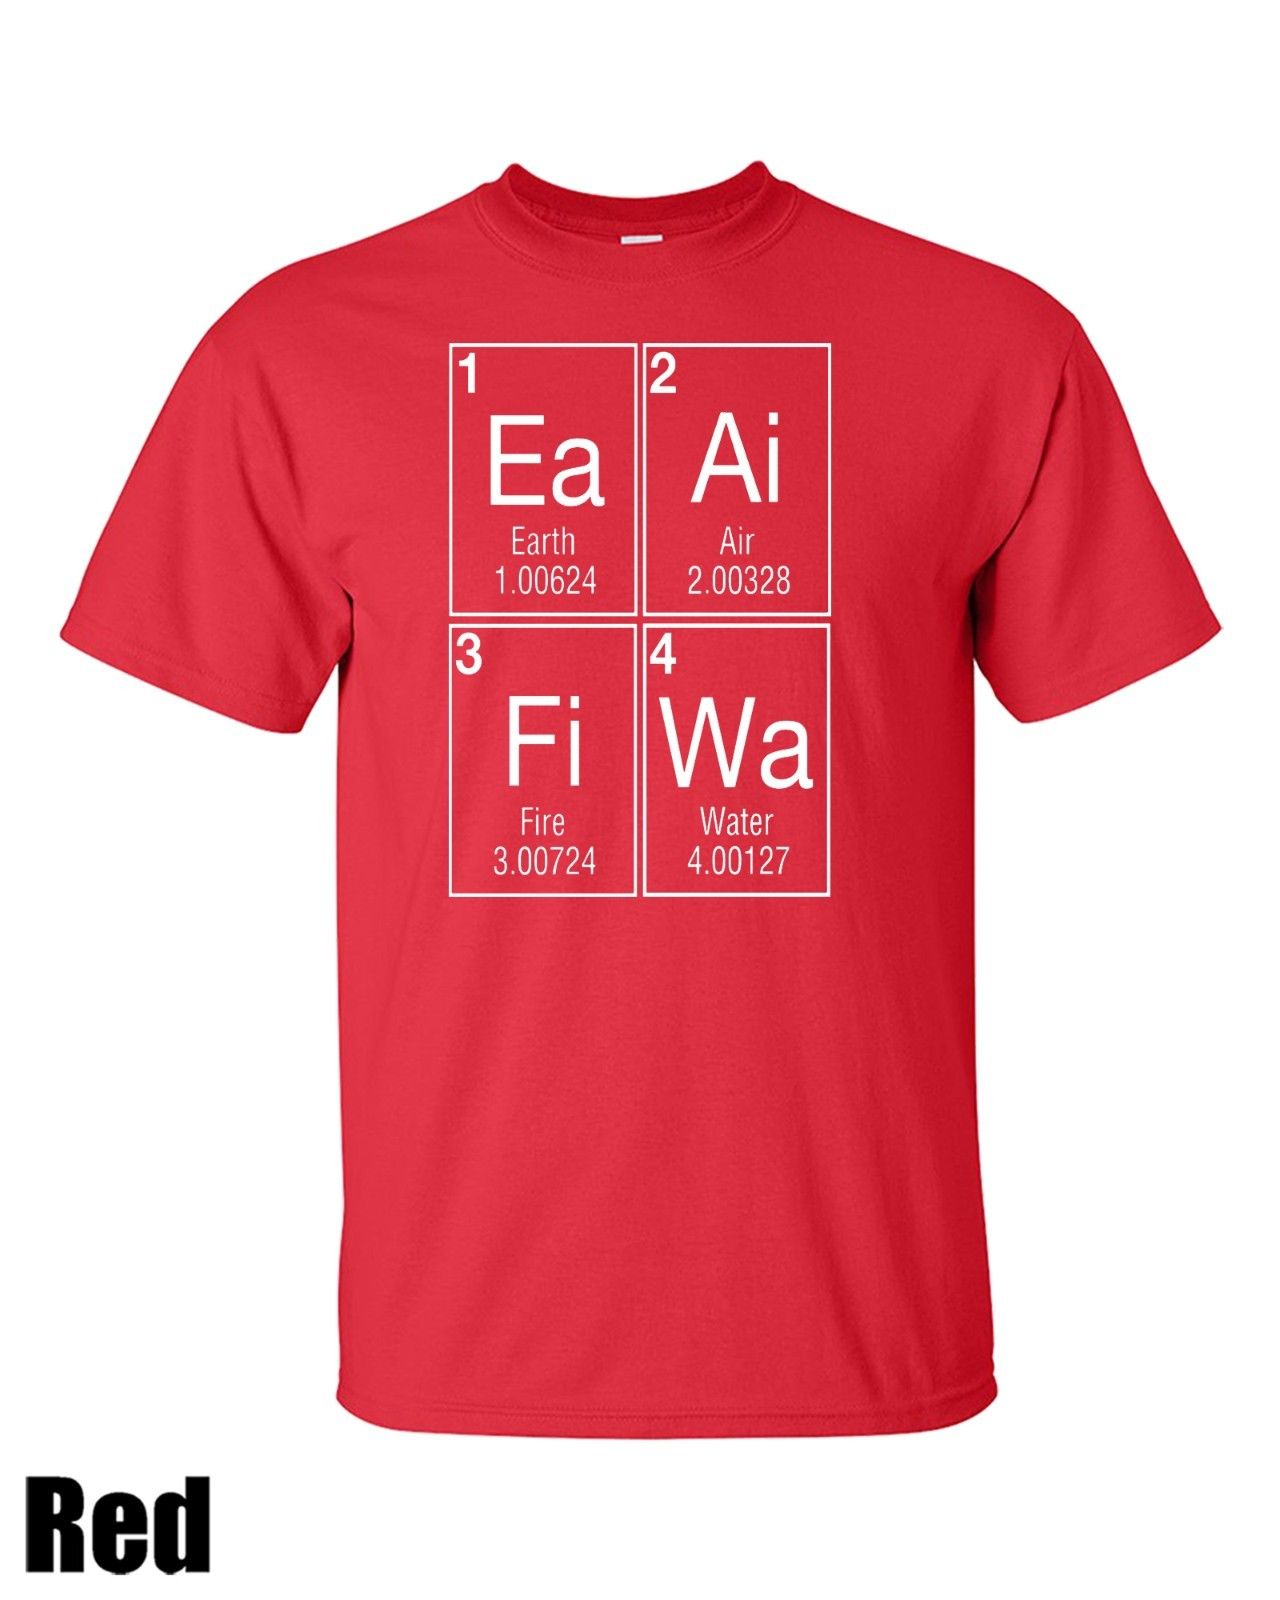 Ancient 4 Elements T shirt New T Shirts Funny Tops Tee New Unisex Funny Tops Fashion T Shirts Summer Straight 100 Cotton in T Shirts from Men 39 s Clothing